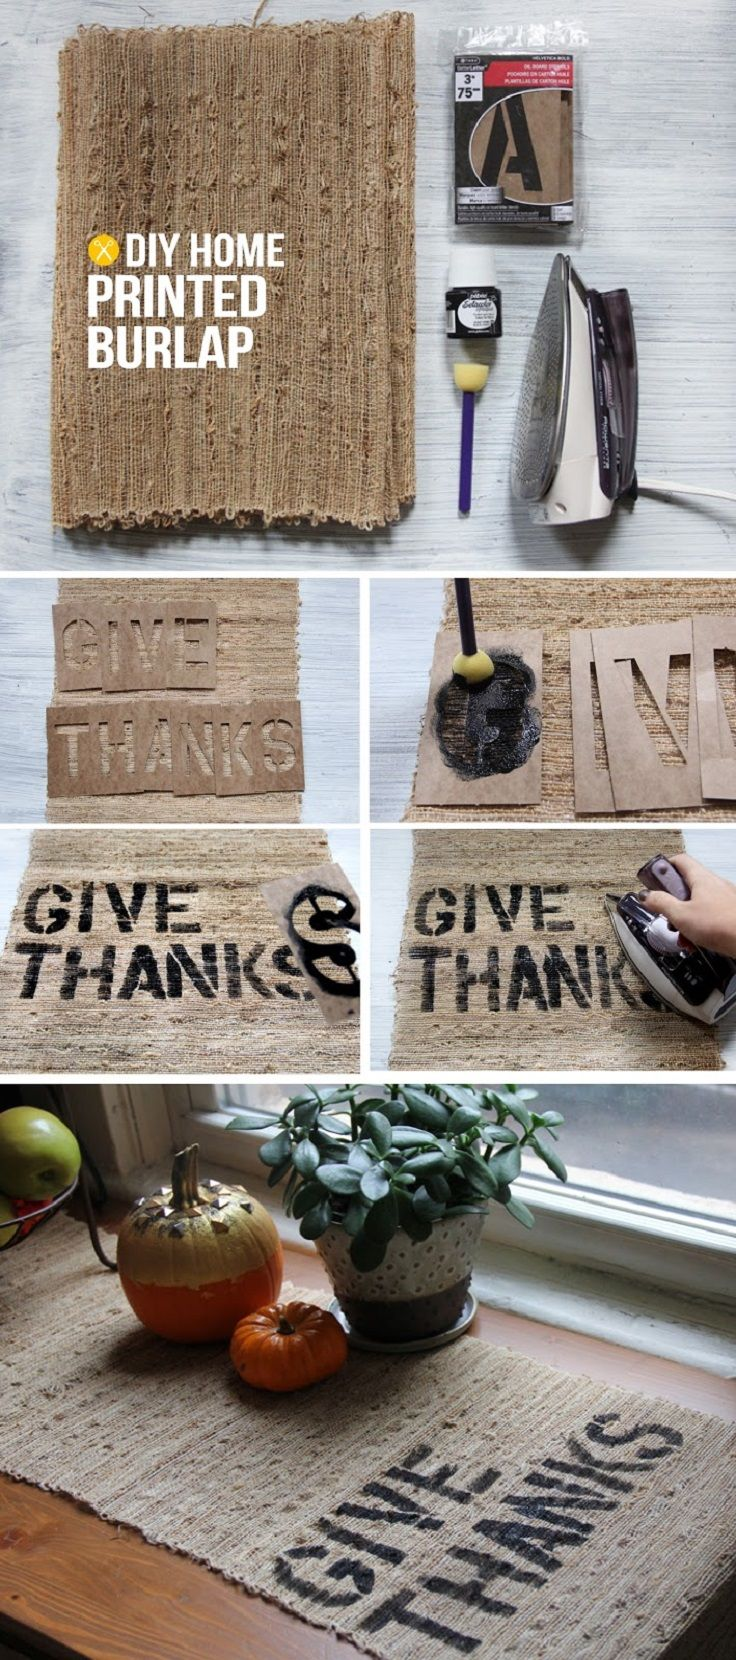 printed burlap diy table runner 17 joyous thanksgiving decorations to set the mood for holidays